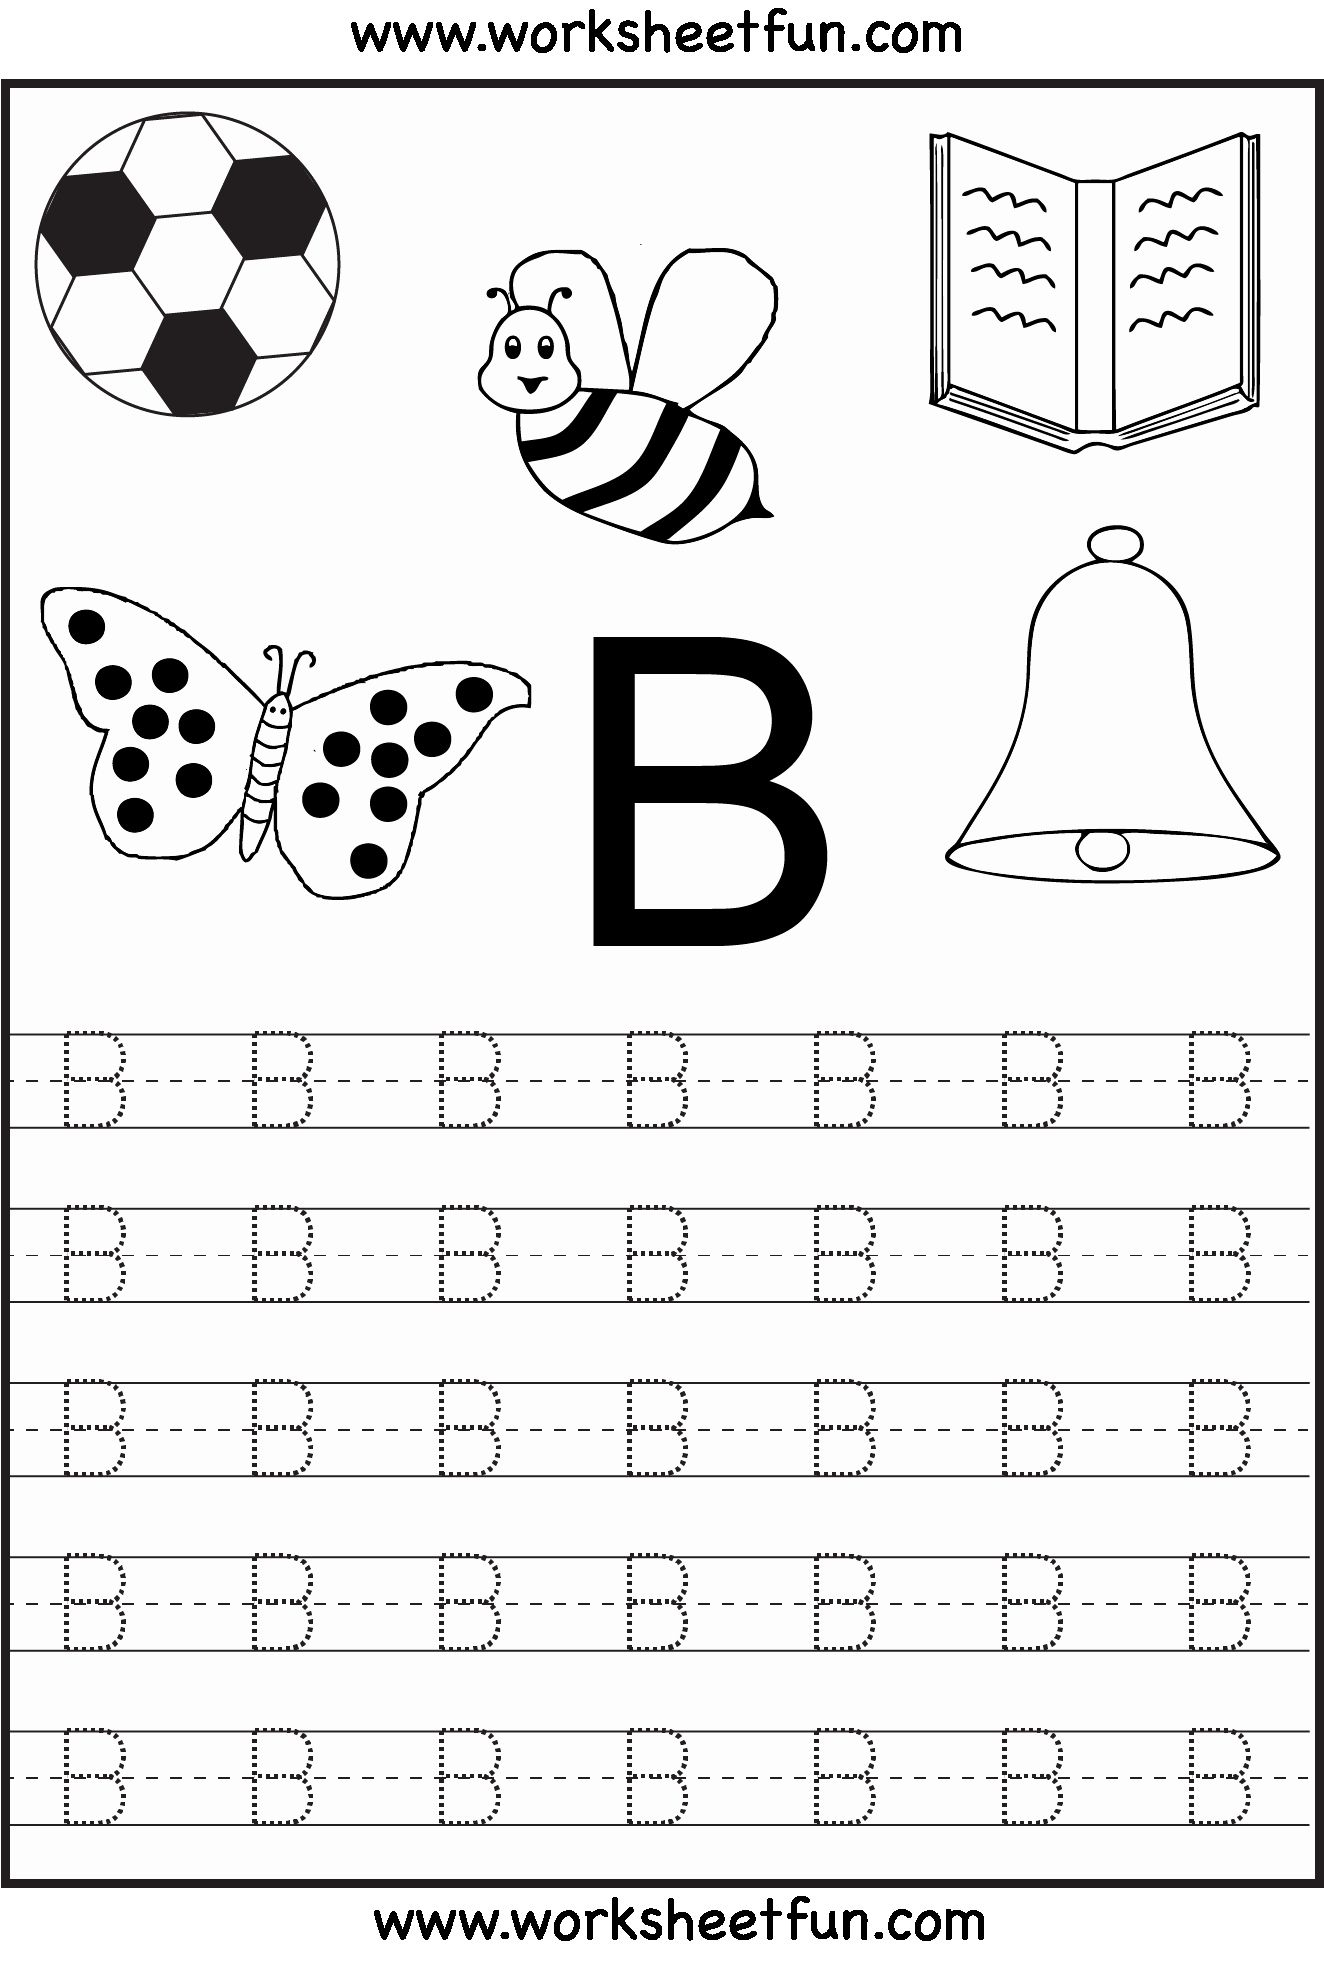 Alphabet Coloring Worksheets A-Z Pdf Luxury Free Printable in Alphabet Worksheets A-Z Printable